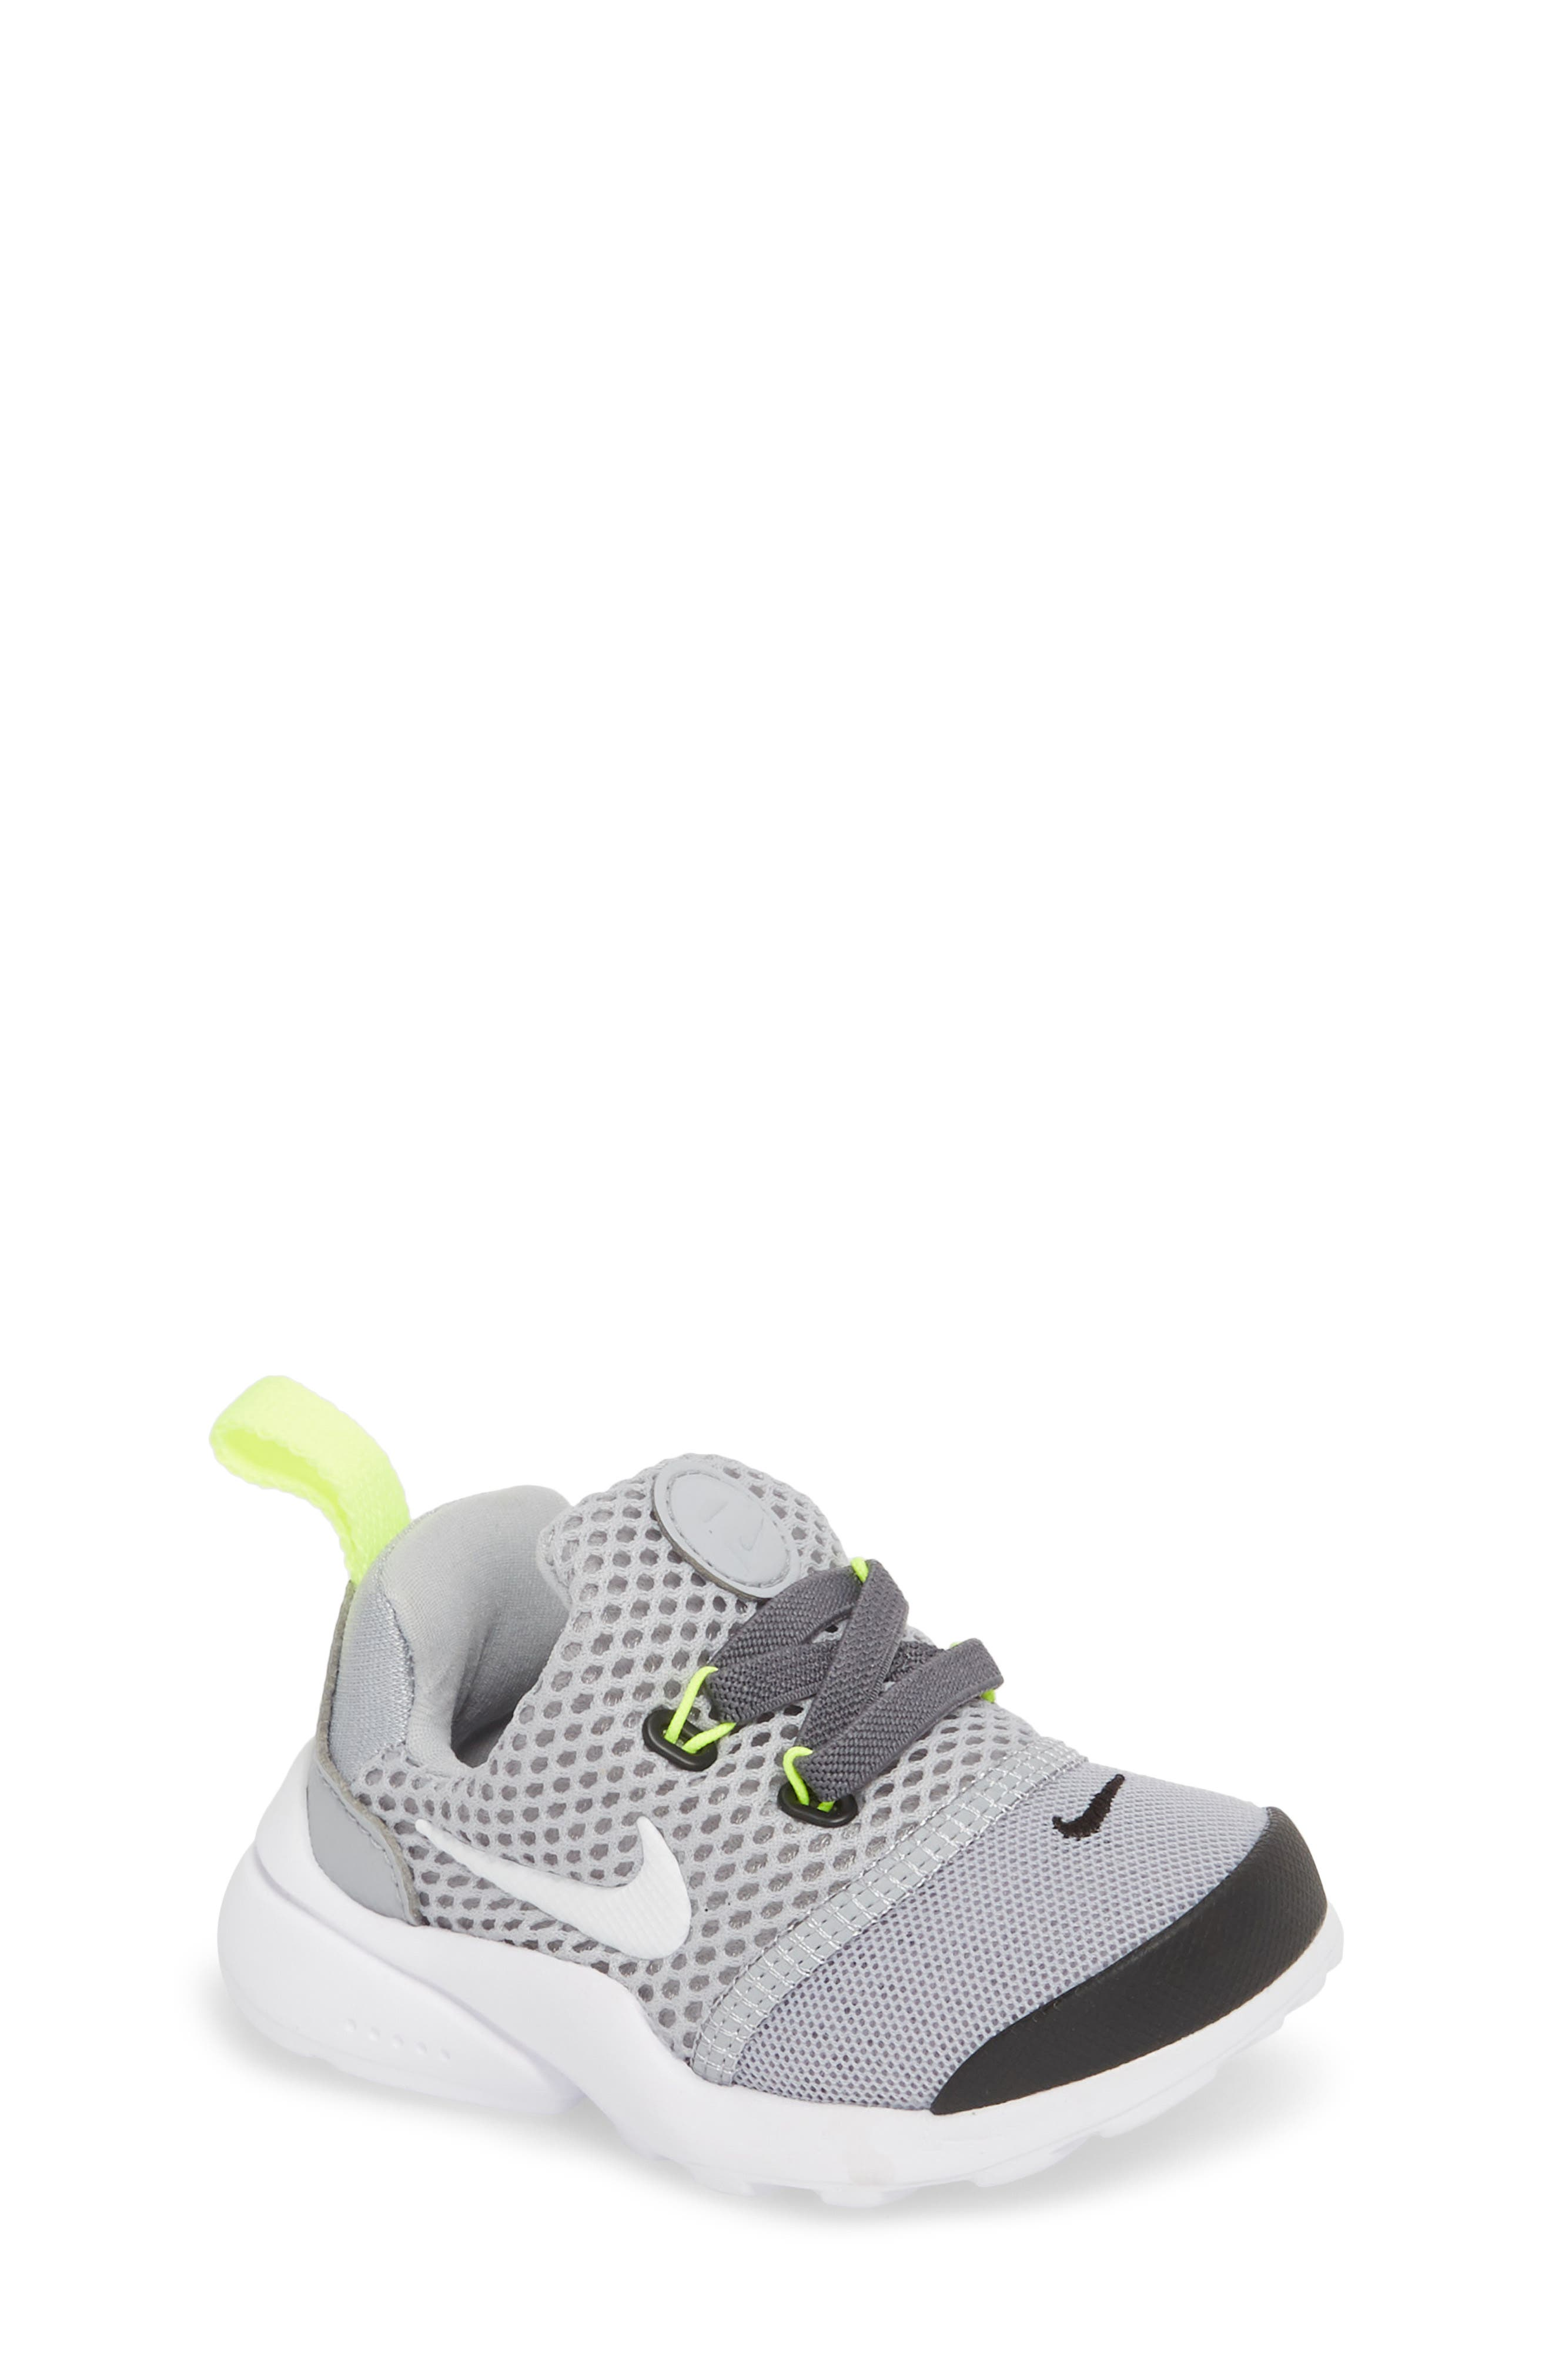 Presto Fly GS Sneaker,                         Main,                         color, Grey/ White/ Black/ Volt